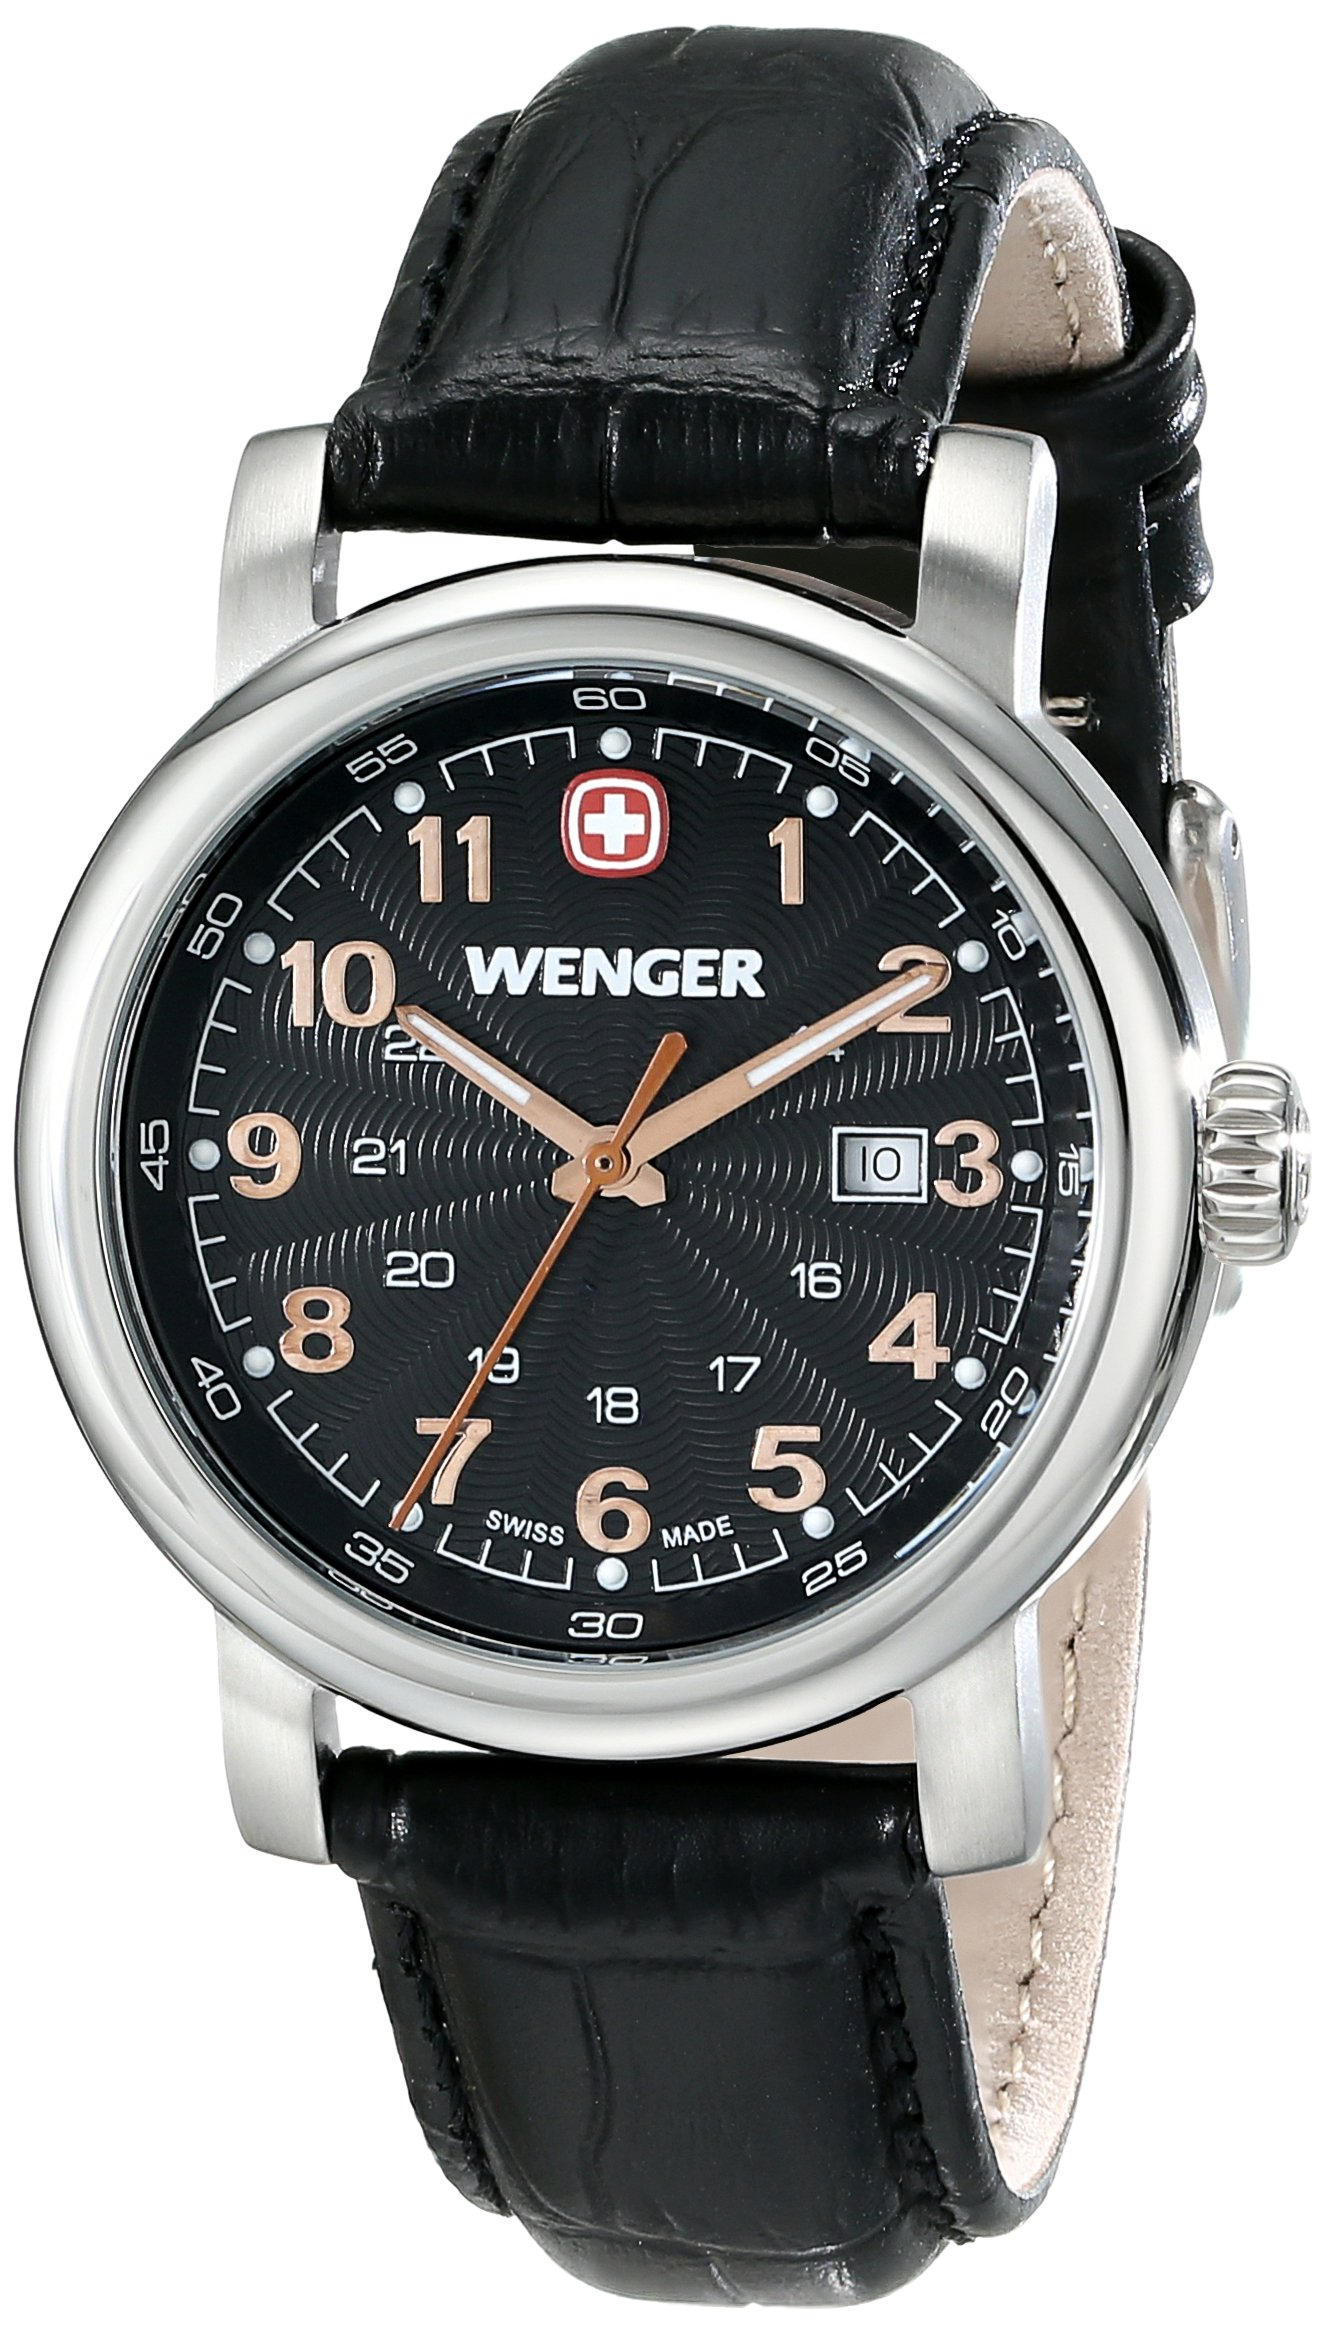 Wenger Women's 1021.105 Analog Display Swiss Quartz Black Watch